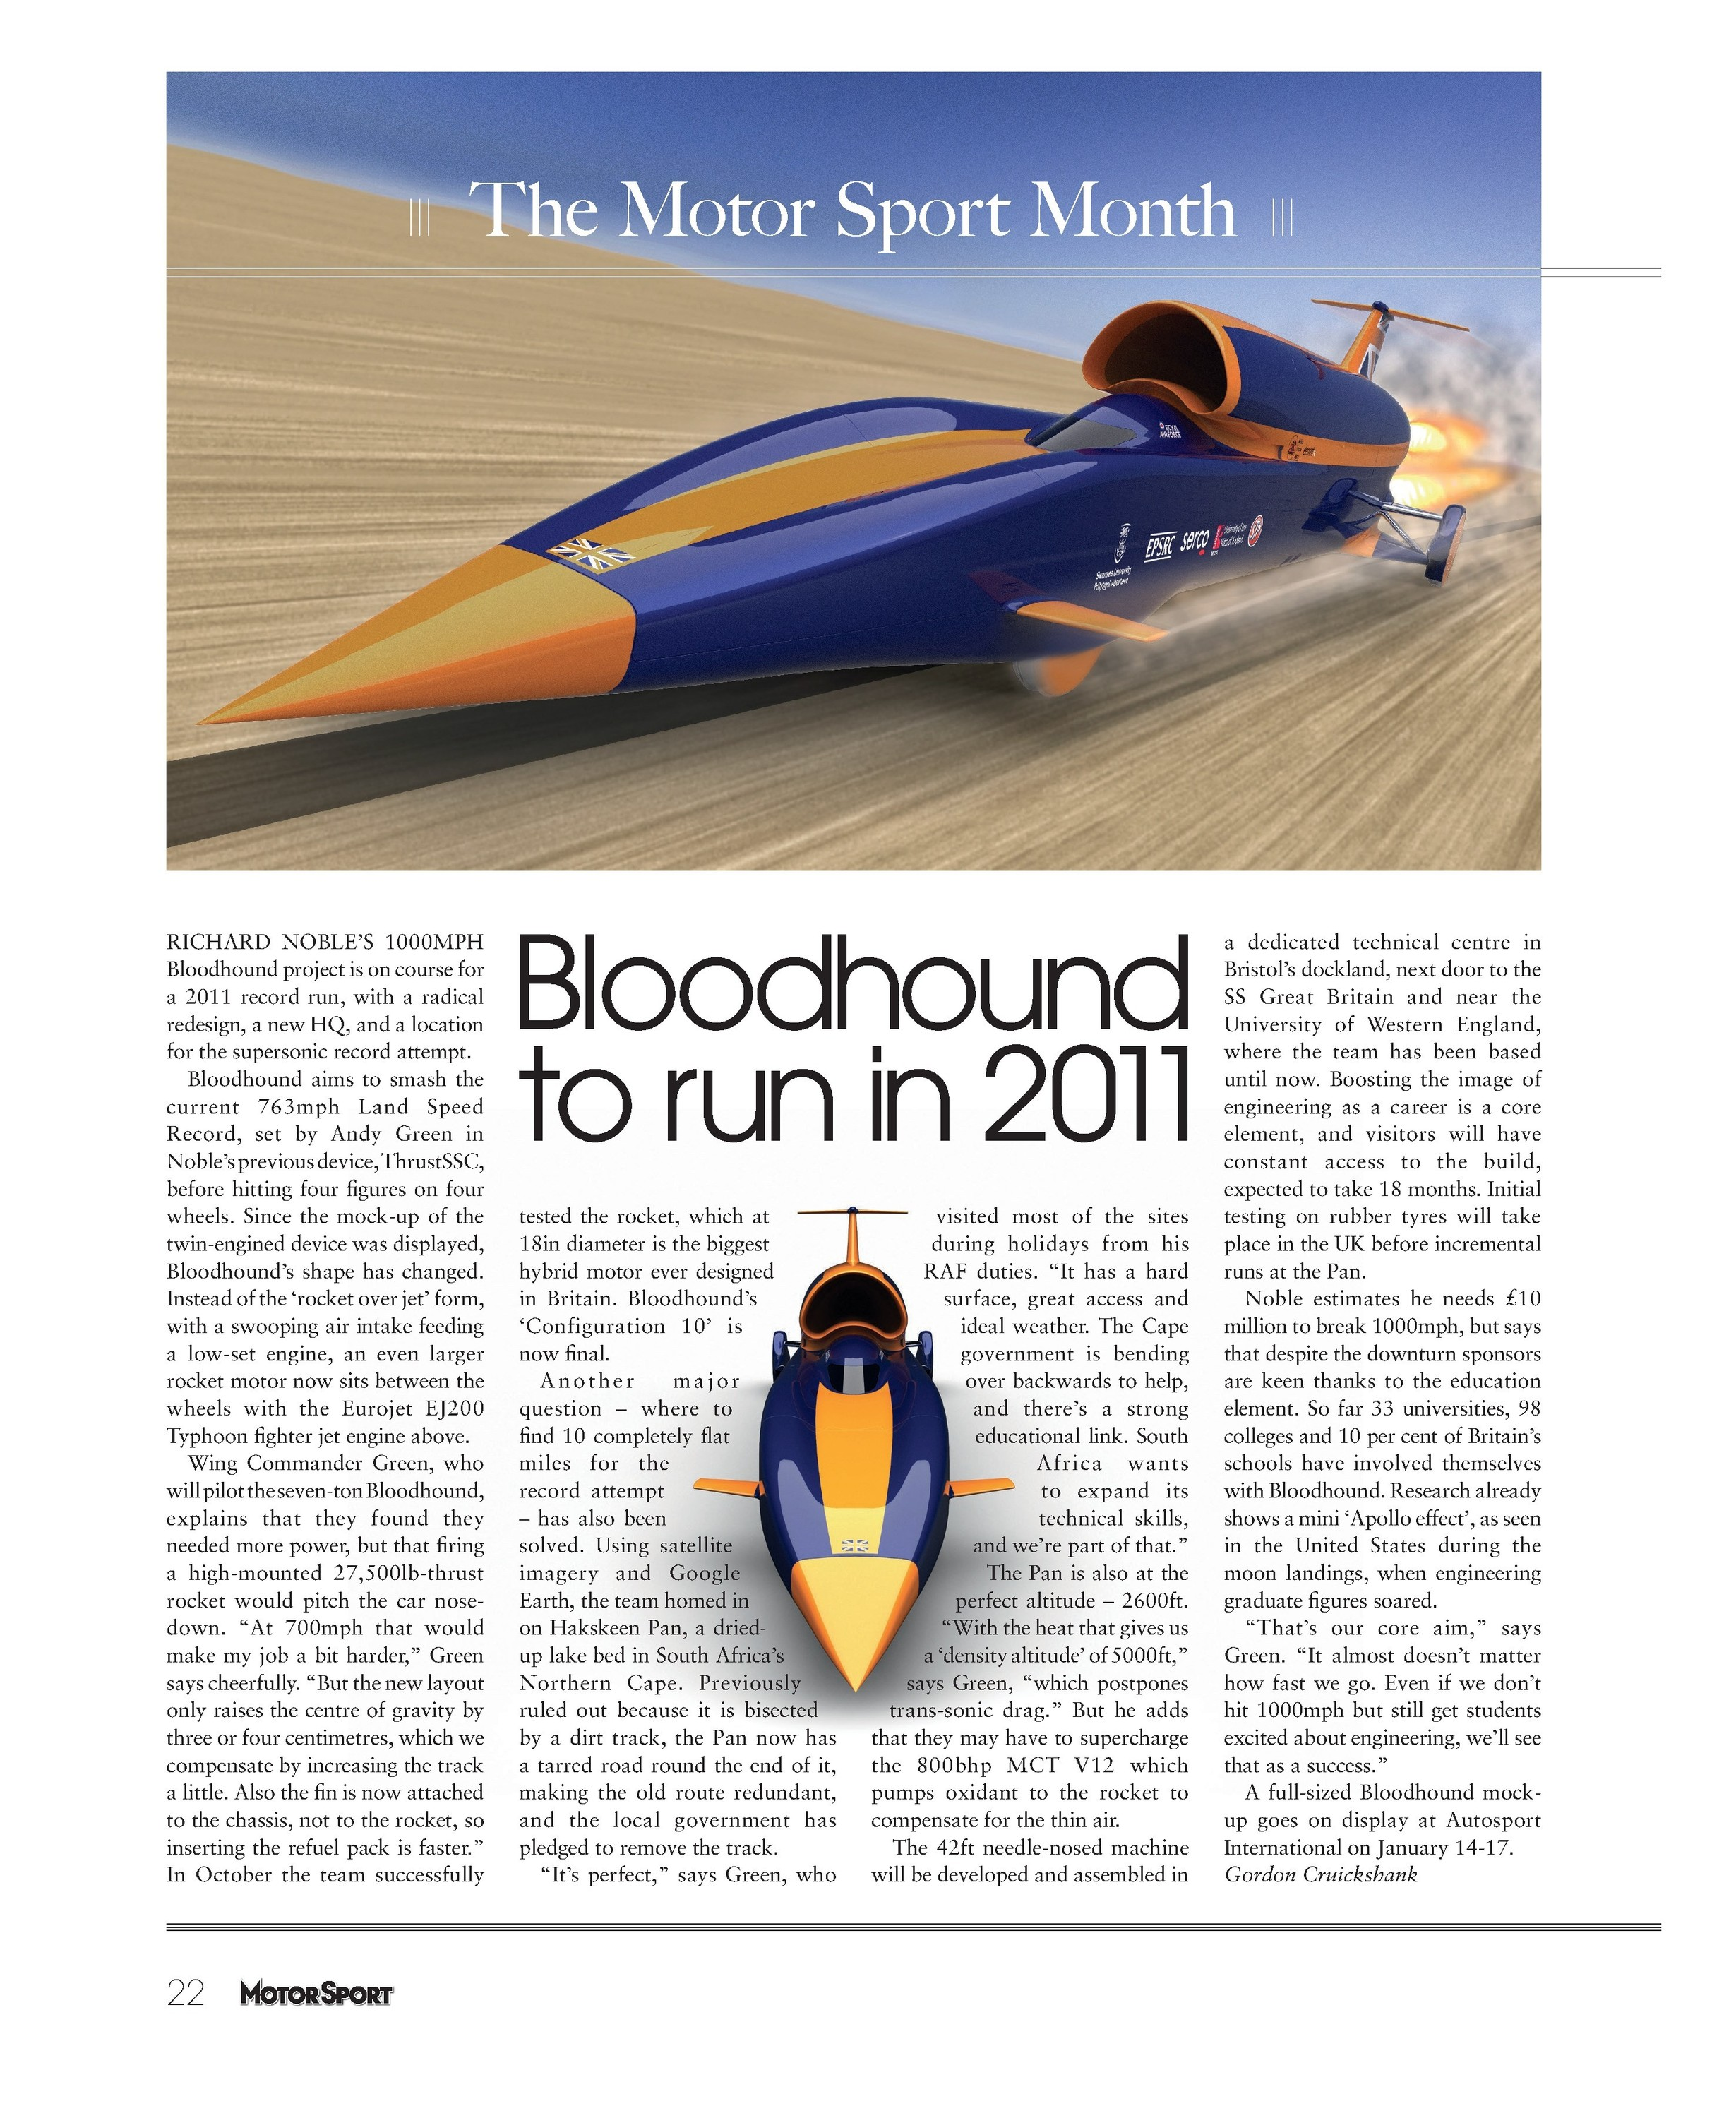 bloodhound to run in 2011 image